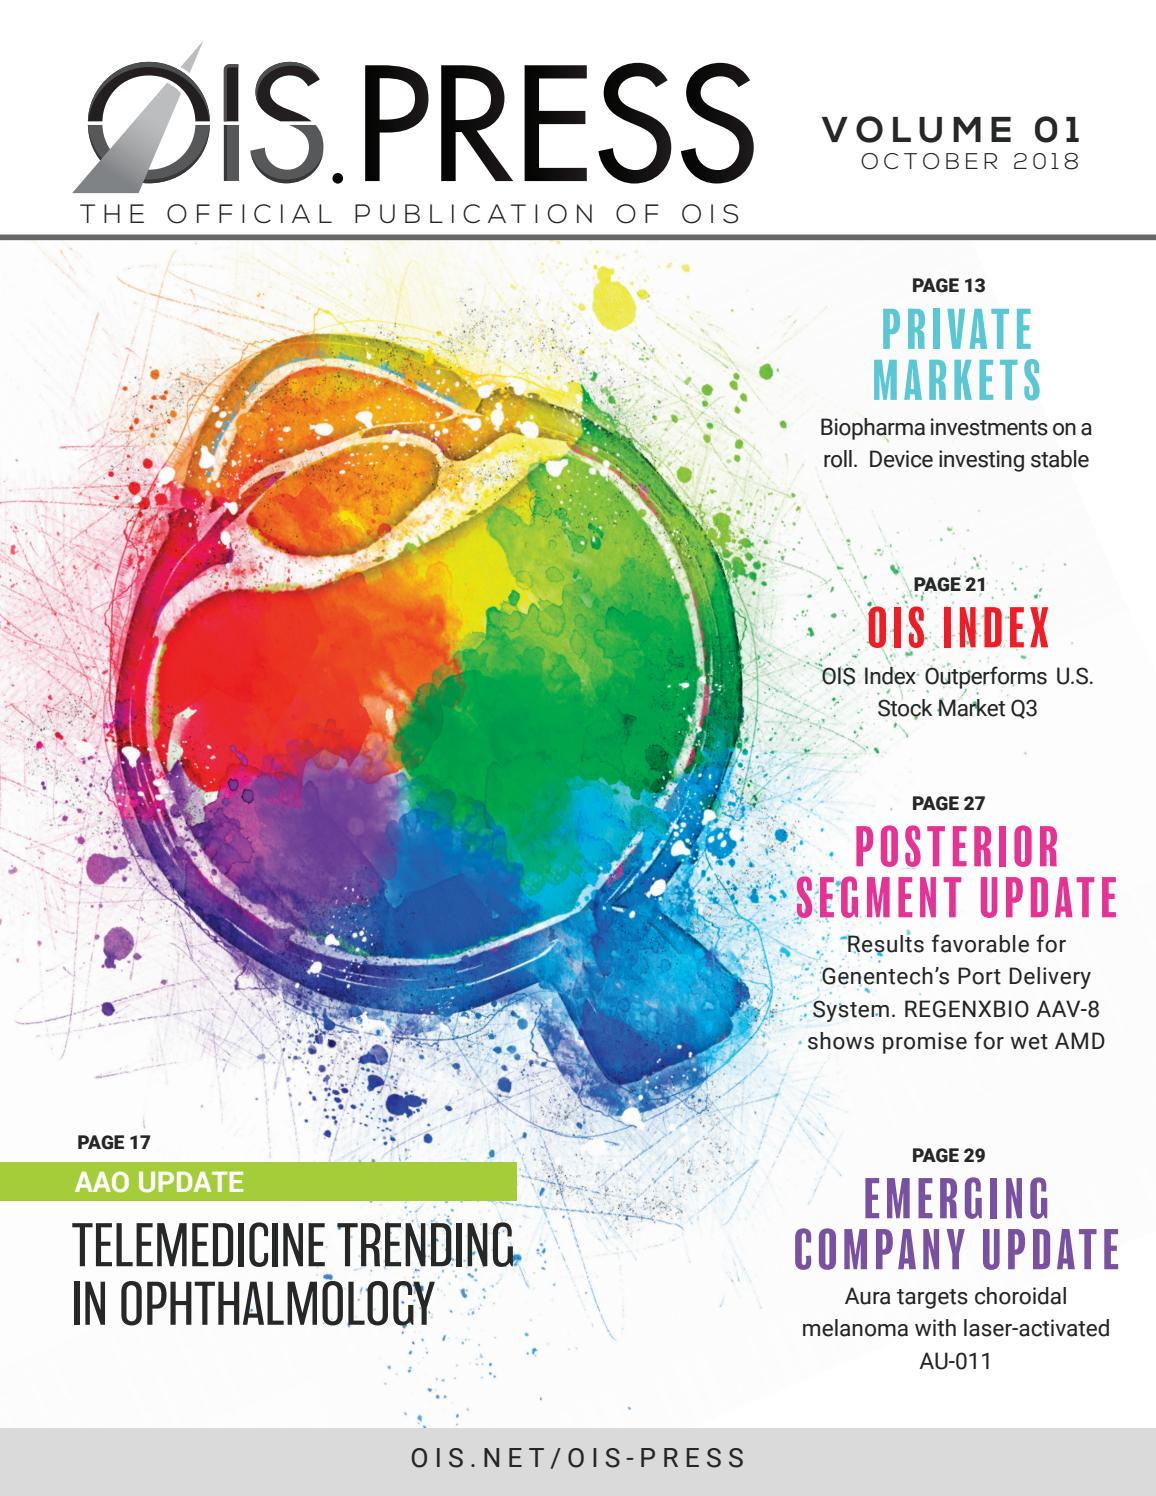 OIS PRESS - OCT 2018 Edition by Healthegy - issuu